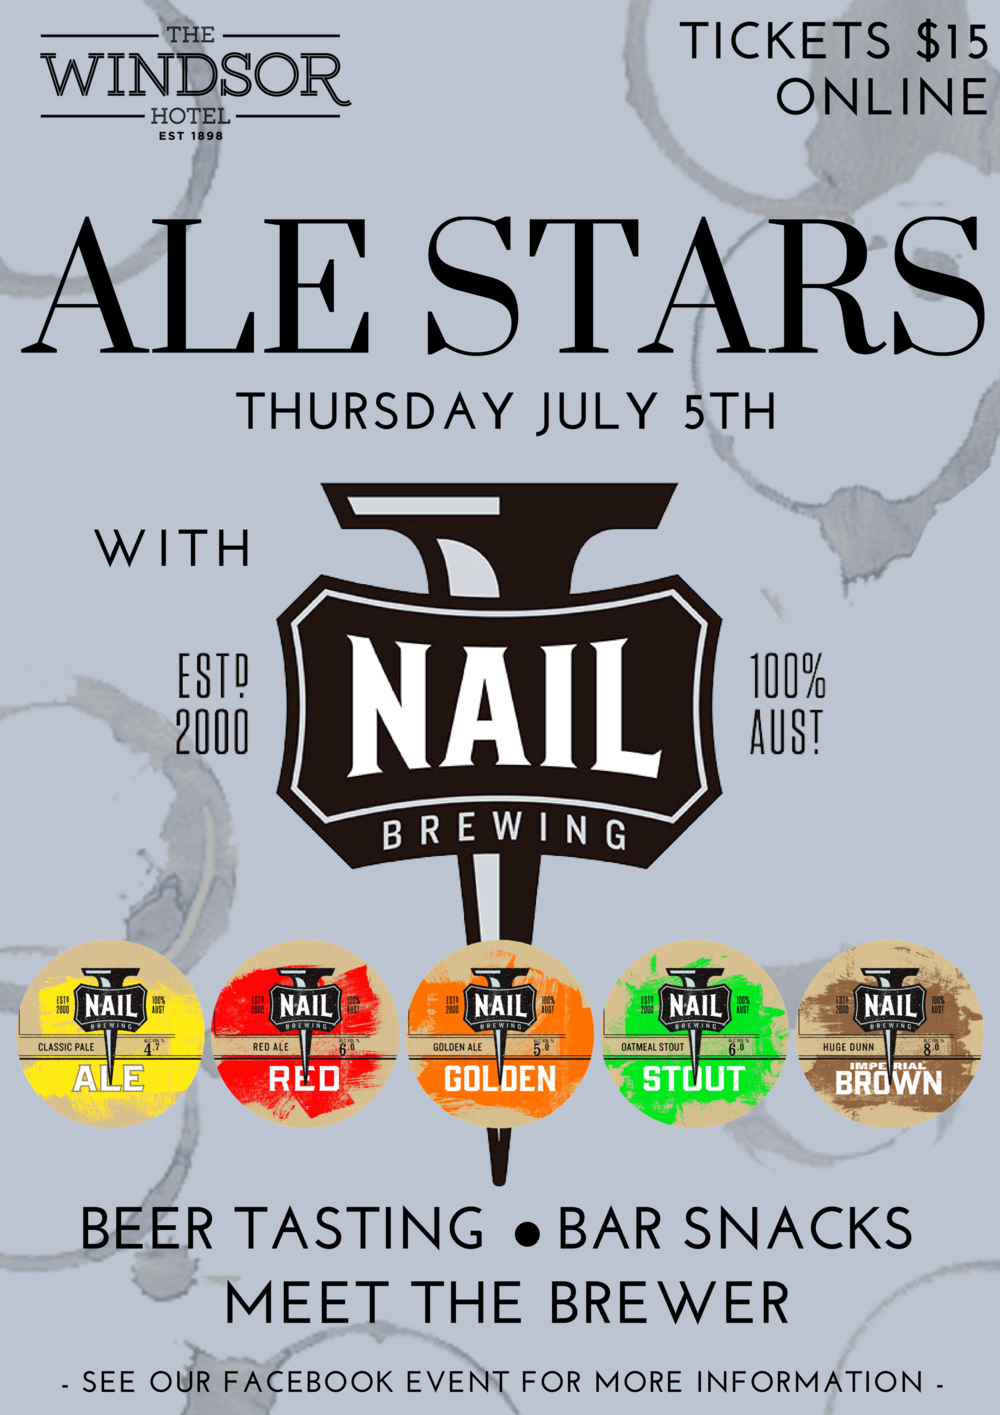 ALE STARS  The first Thursday of Every Month sees an introduction to our Tap Takeover with Ale Stars - Our Monthly Beer Masterclass.  For only $10 per person, beer lovers will learn the local brewing secrets, try their range of products as well as our specially paired Beer Snacks!